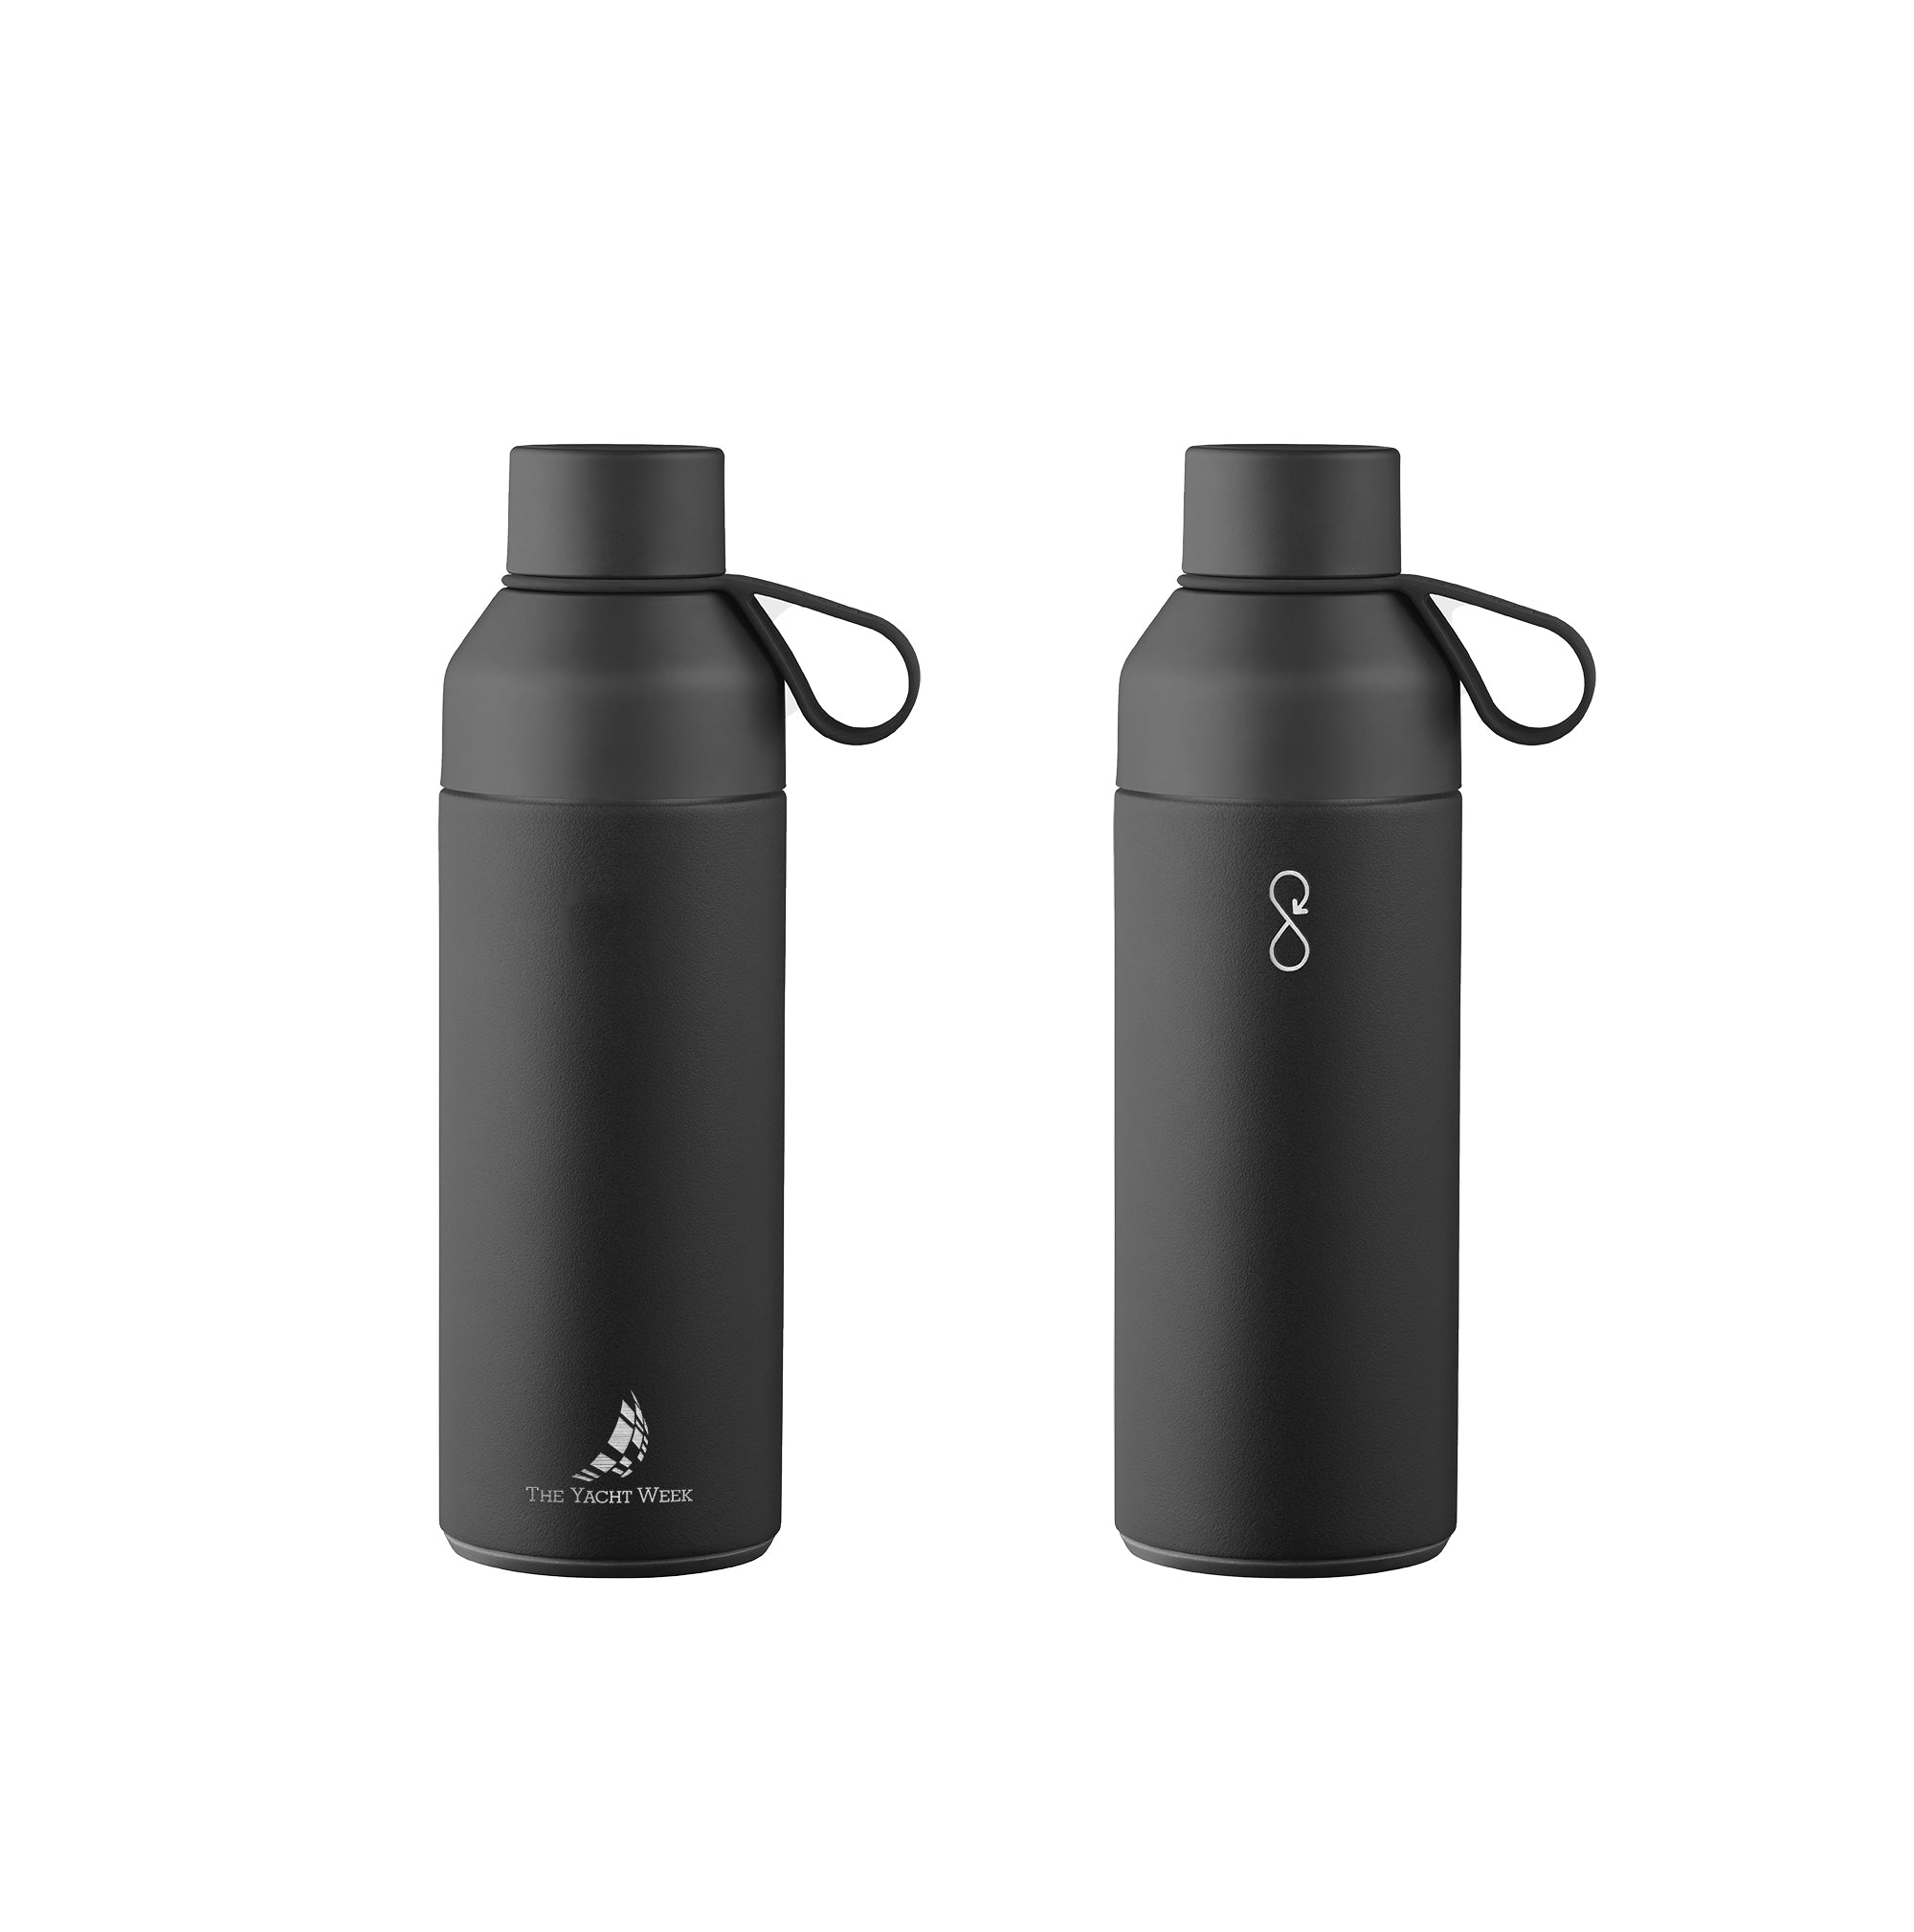 TYW Ocean Bottle - Black